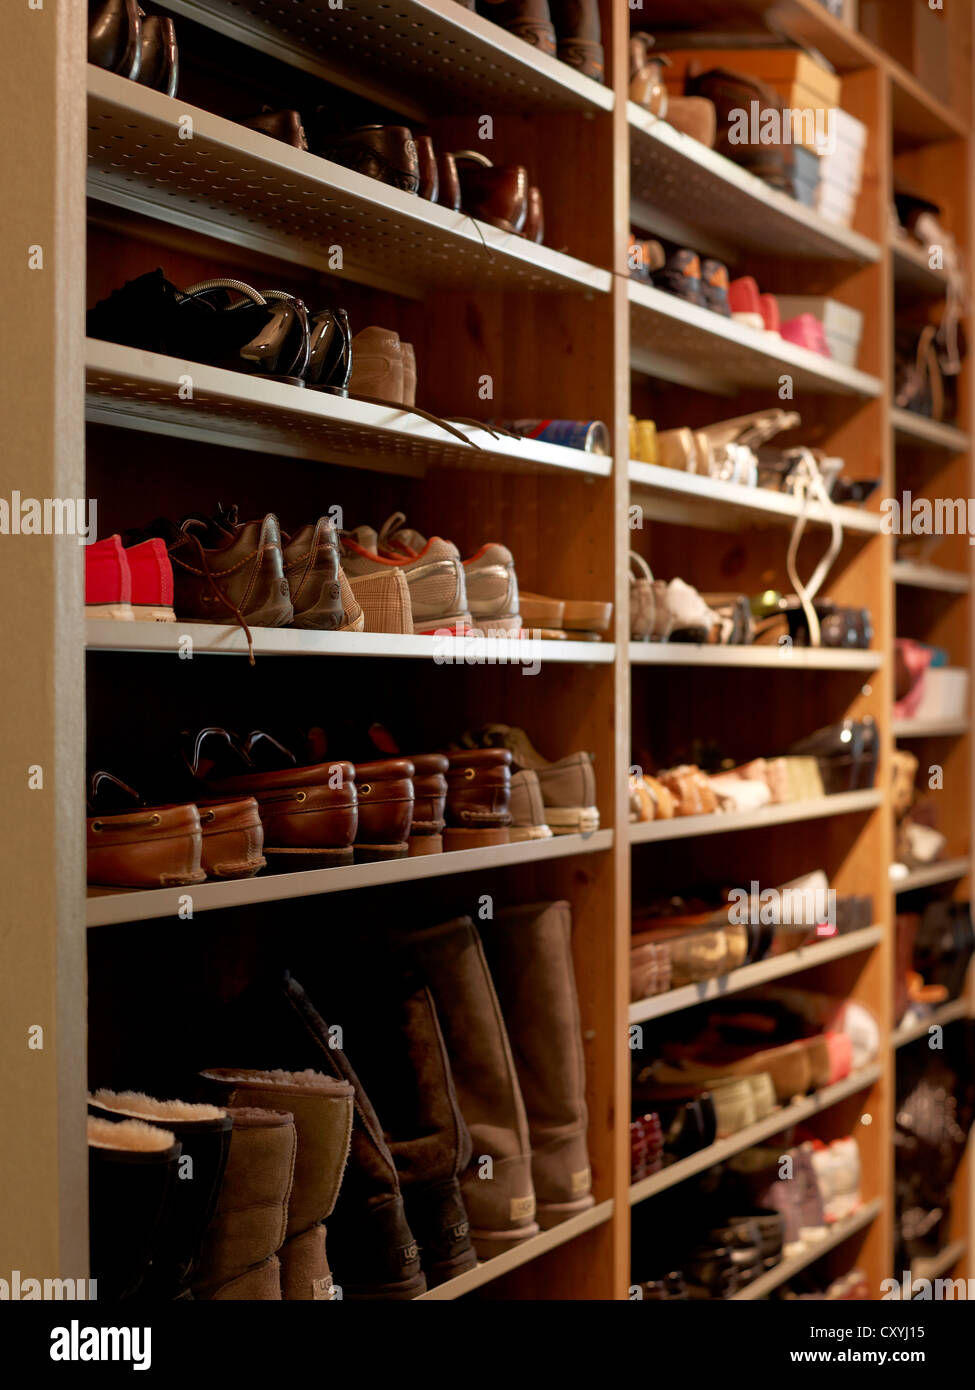 Open Shoe Rack In A Large Family Household   Stock Image